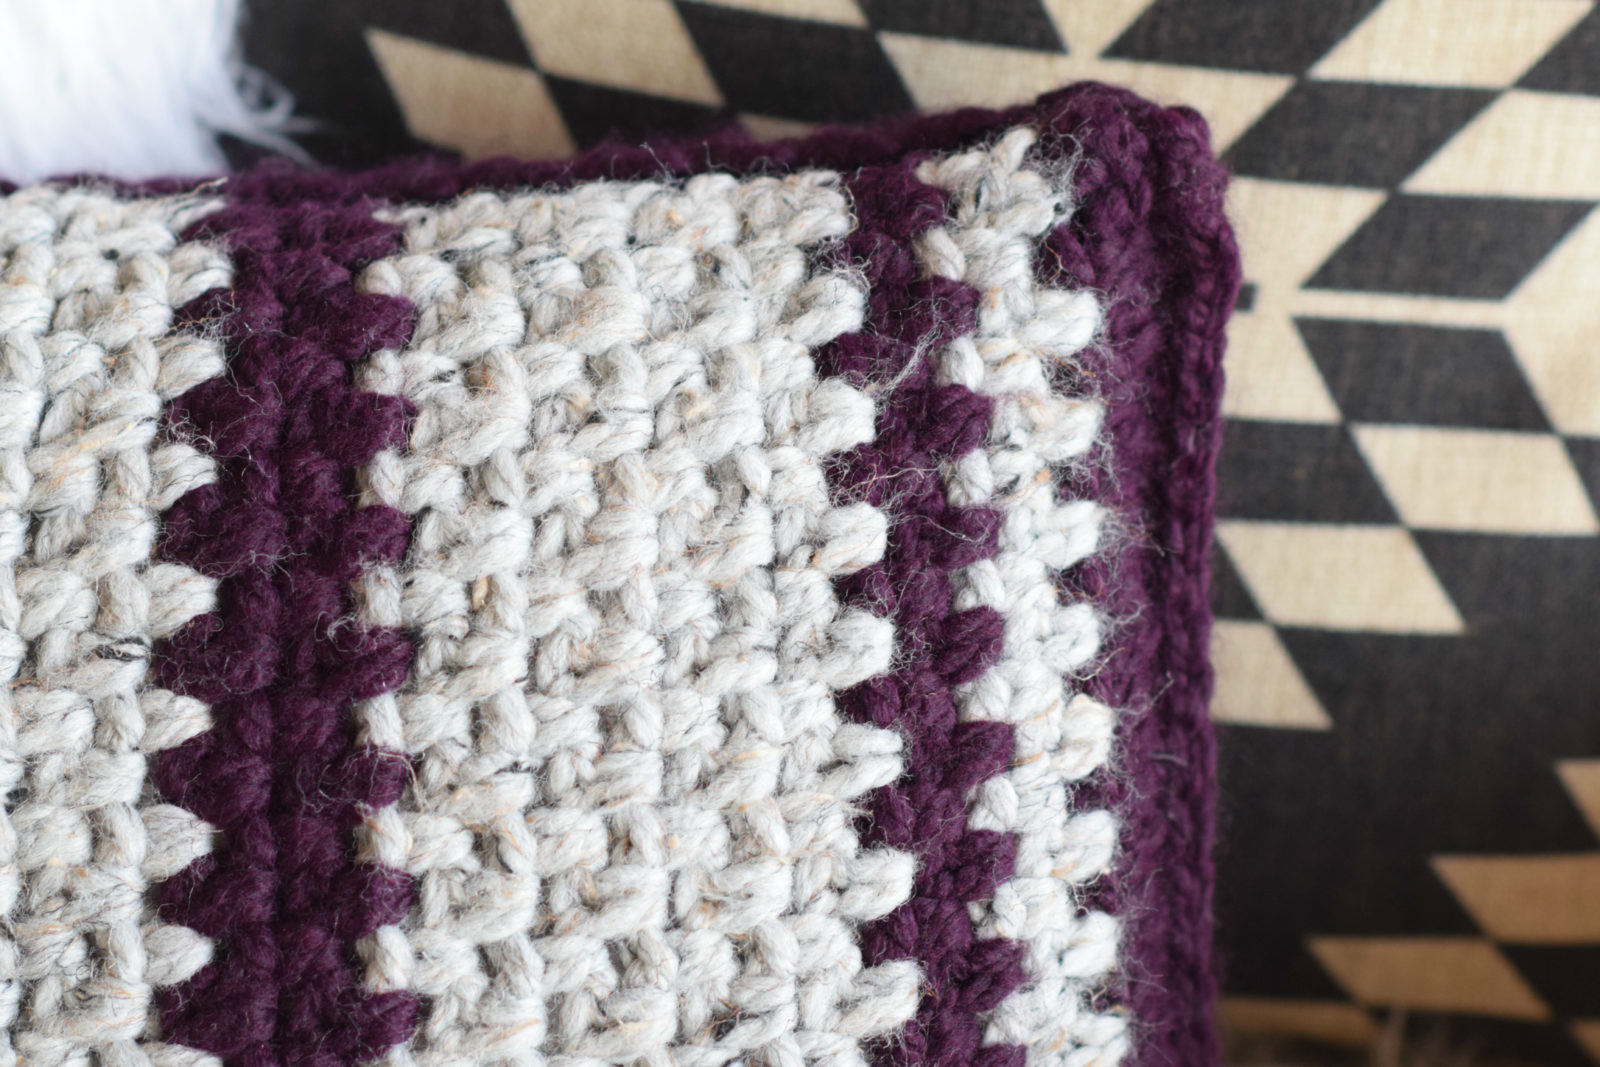 Crochet Pillow Lovely Taos Crochet Throw Pillow & Wool Ease Yarn – Mama In A Stitch Of Superb 50 Images Crochet Pillow